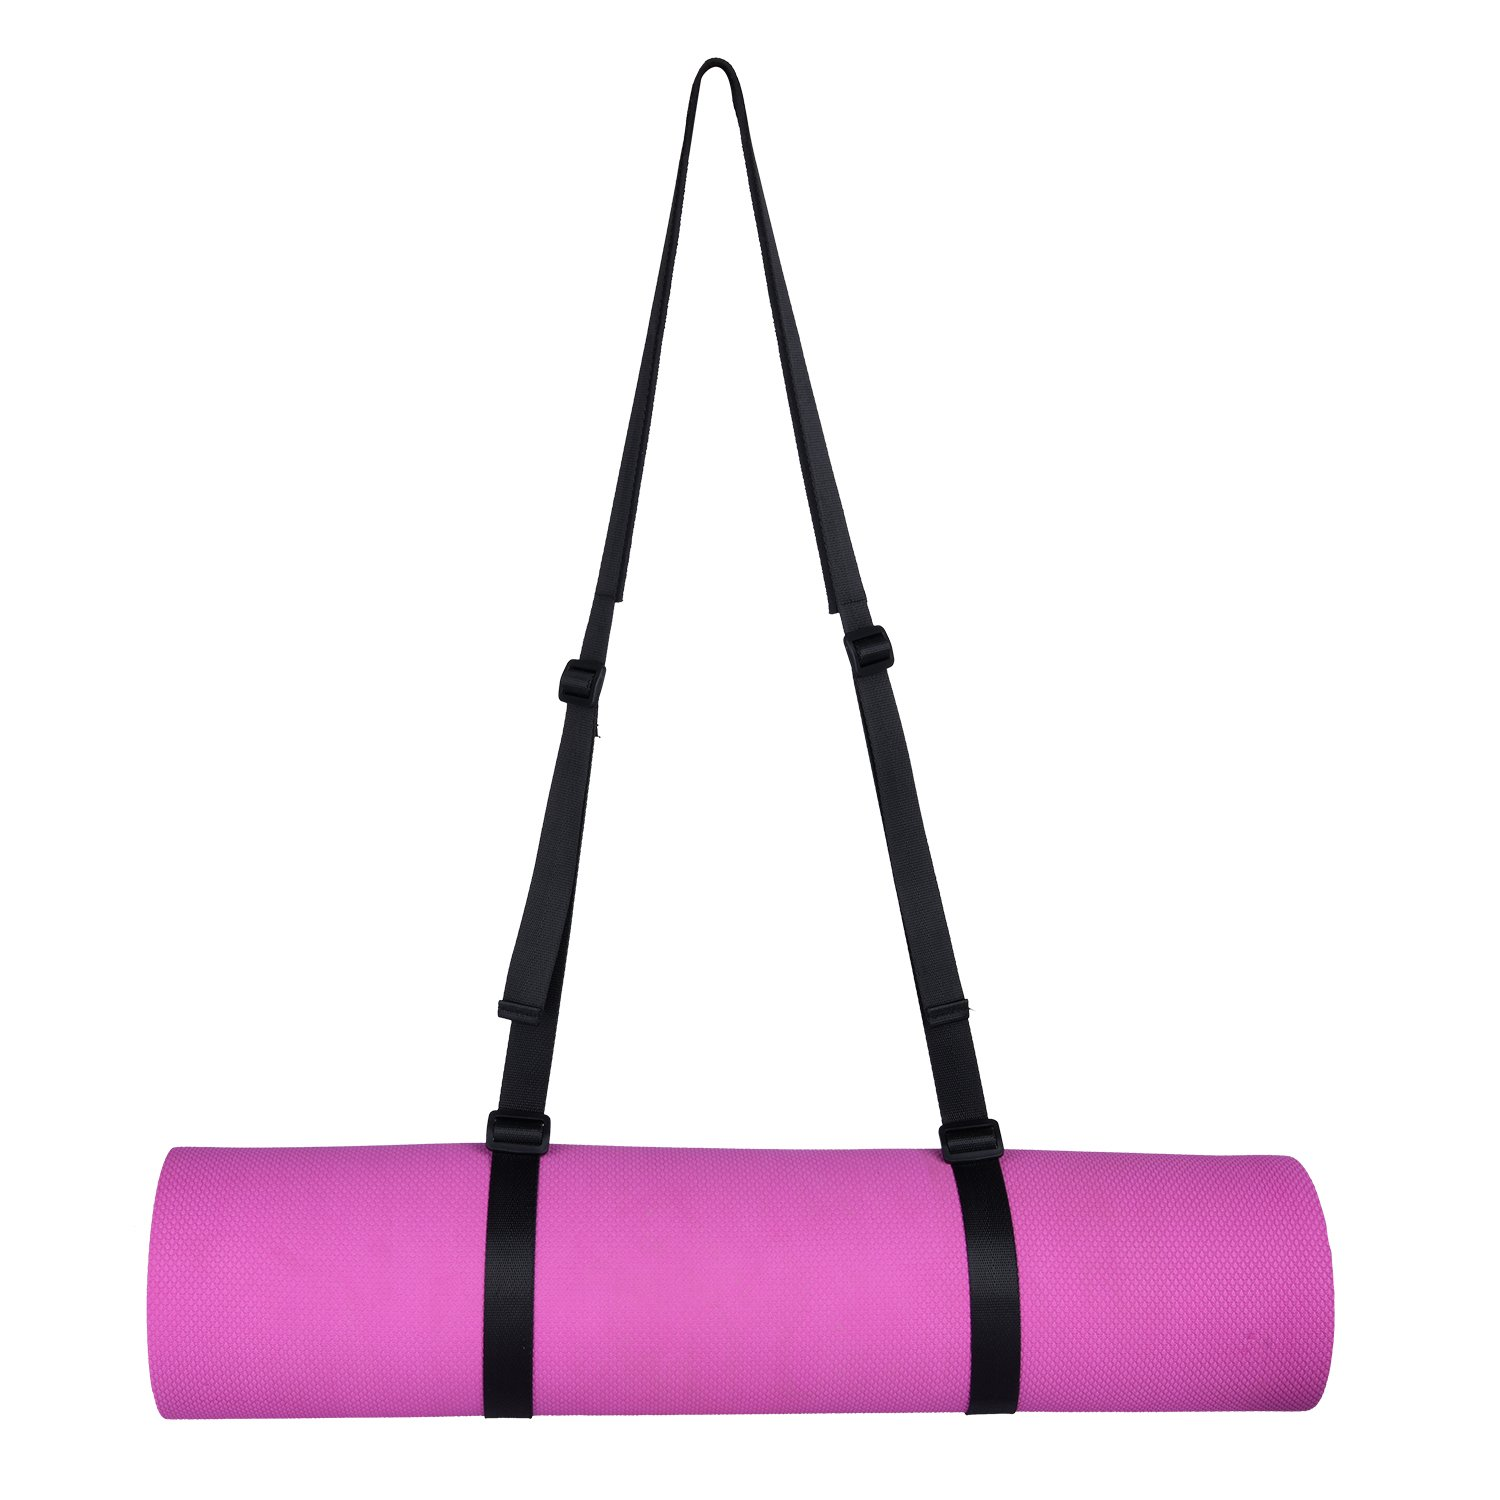 Matymats Non Slip TPE Yoga Mat with Carry Strap for Pilate Gymnastics Bikram Meditation Towel- High Density Thick 1/4\'\' Durable Mat 72\